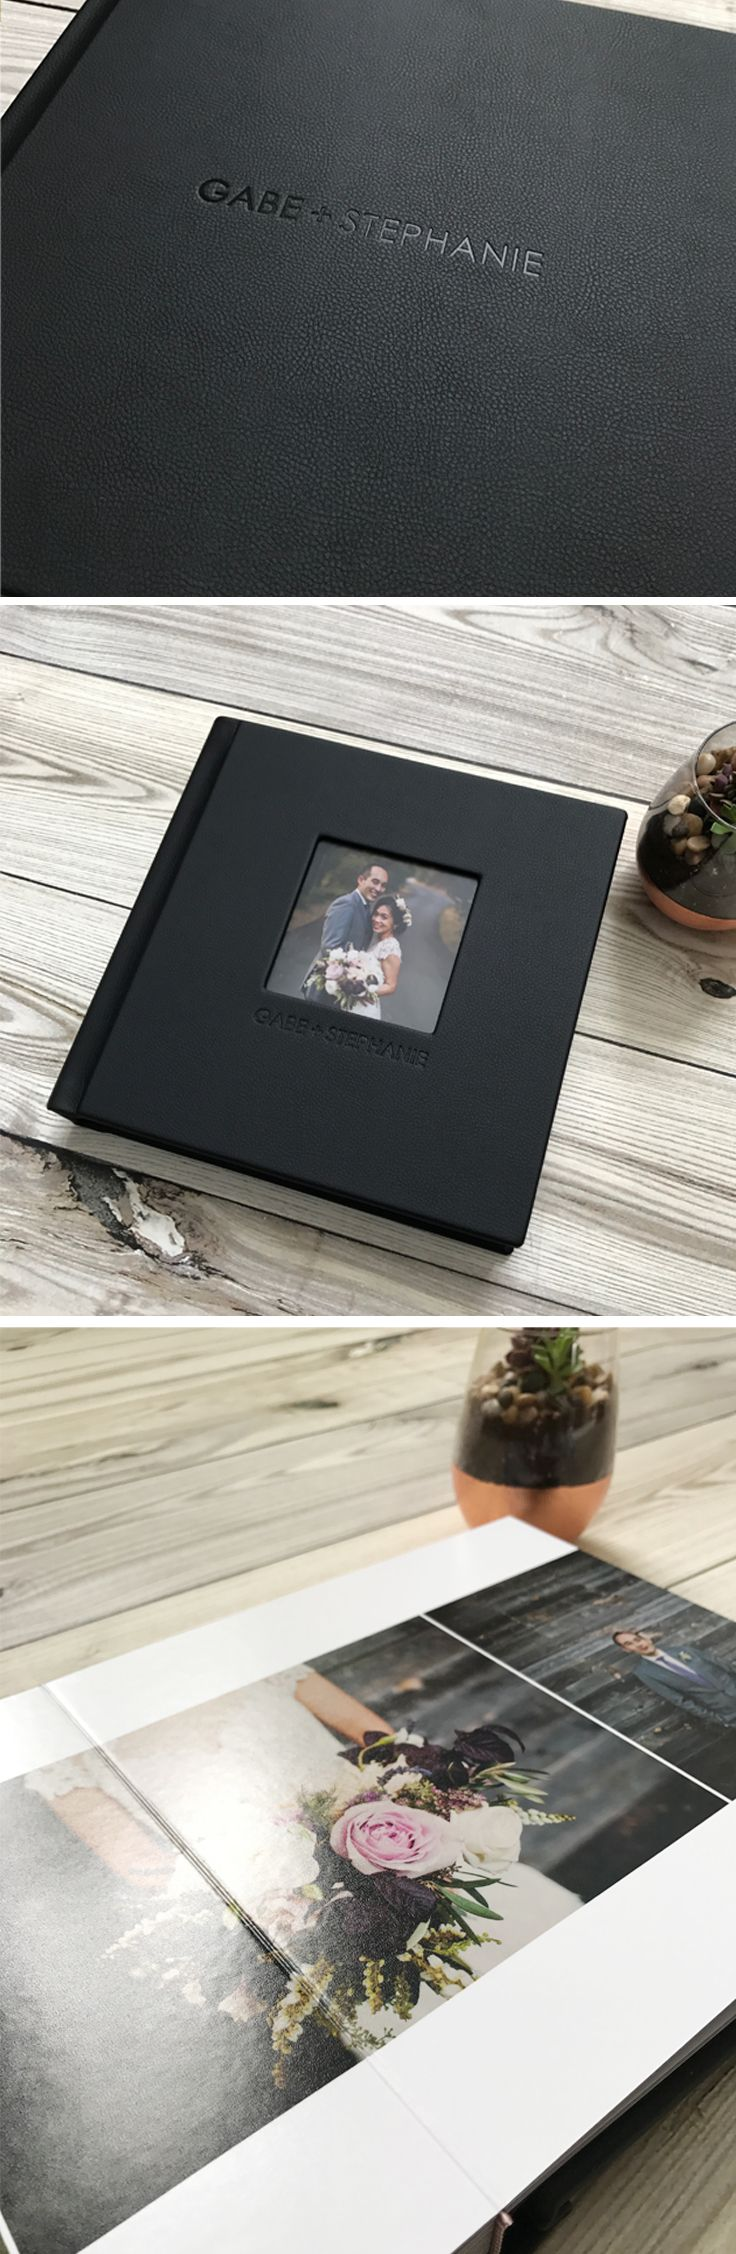 Classic leather wedding photo albums with free design and unlimited revisions. Visit our site www.albumsremembered.com for all the promos!